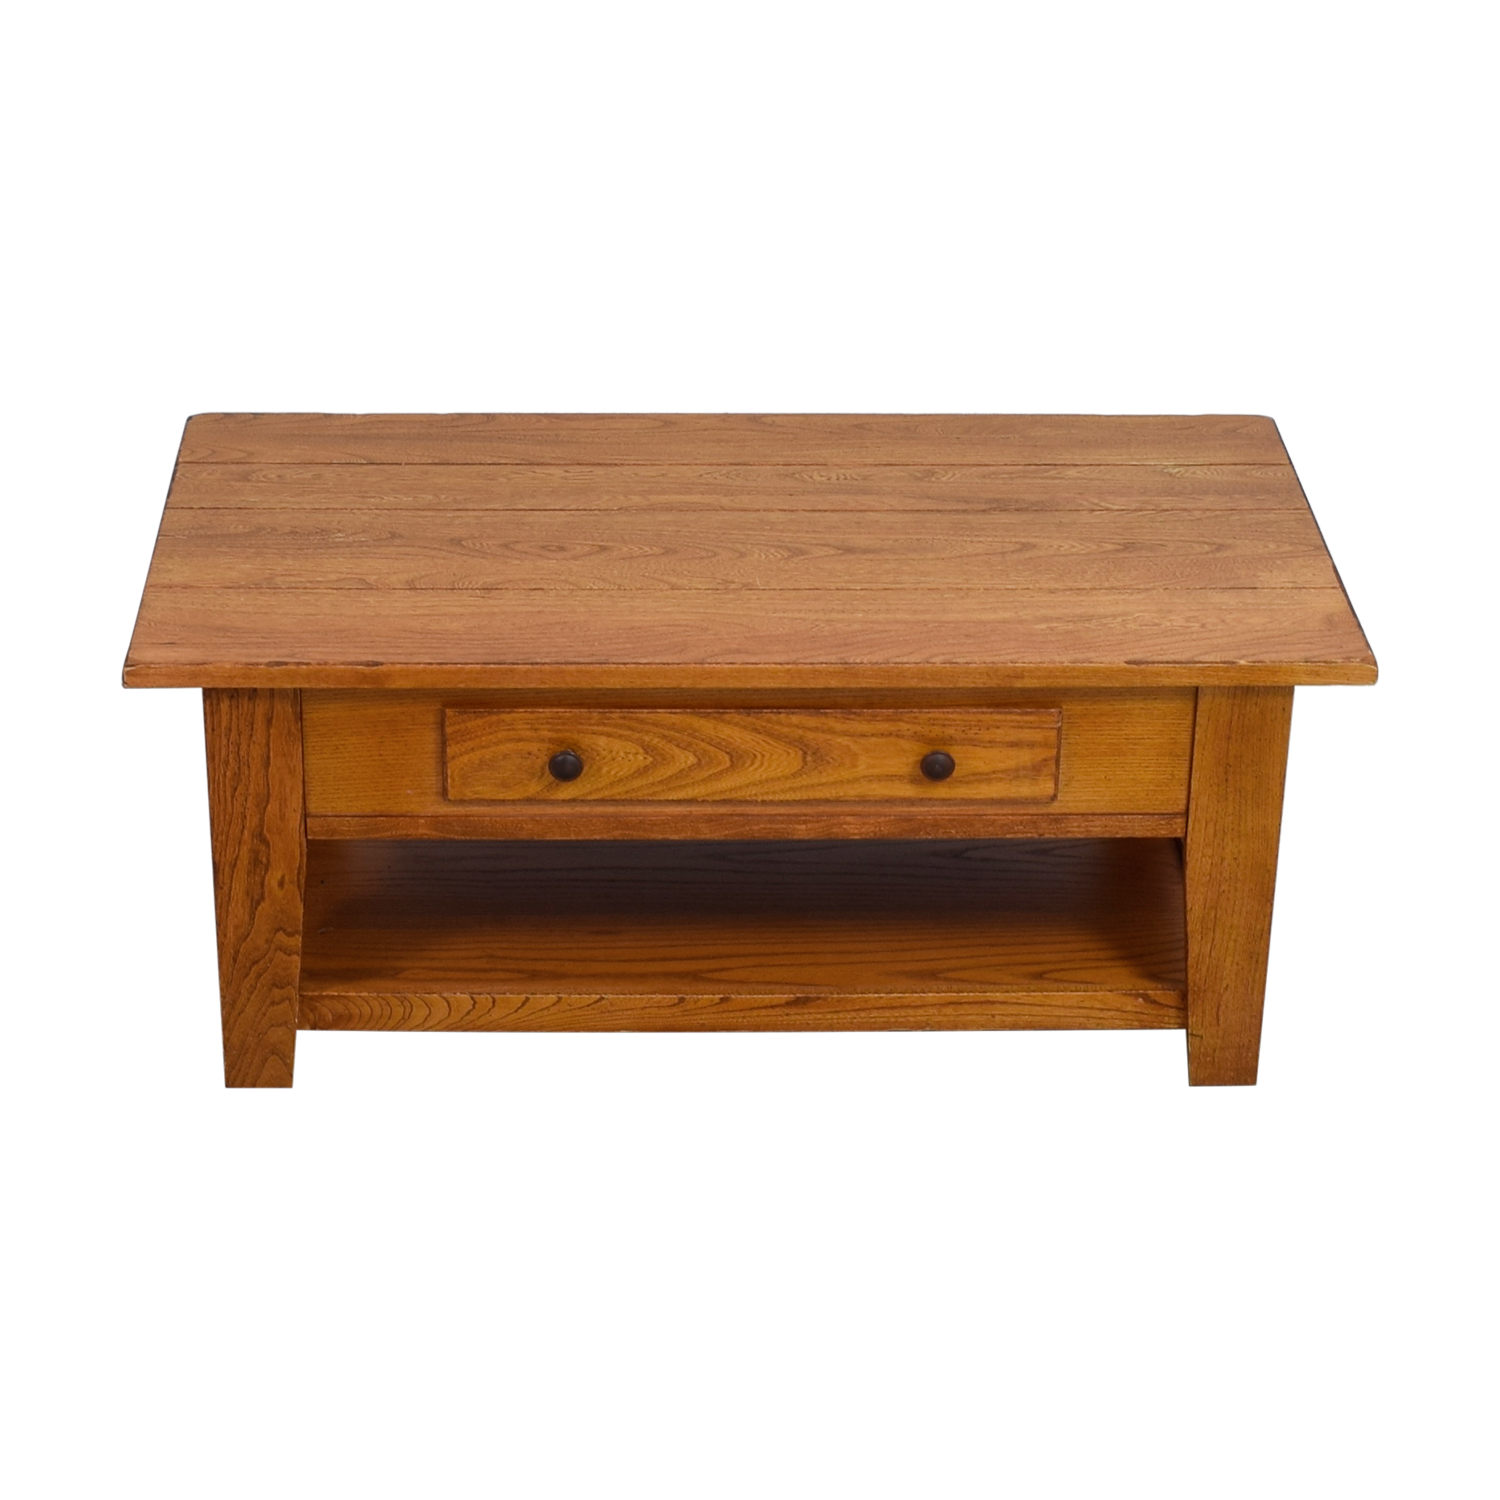 Wood Single Drawer Coffee Table / Coffee Tables